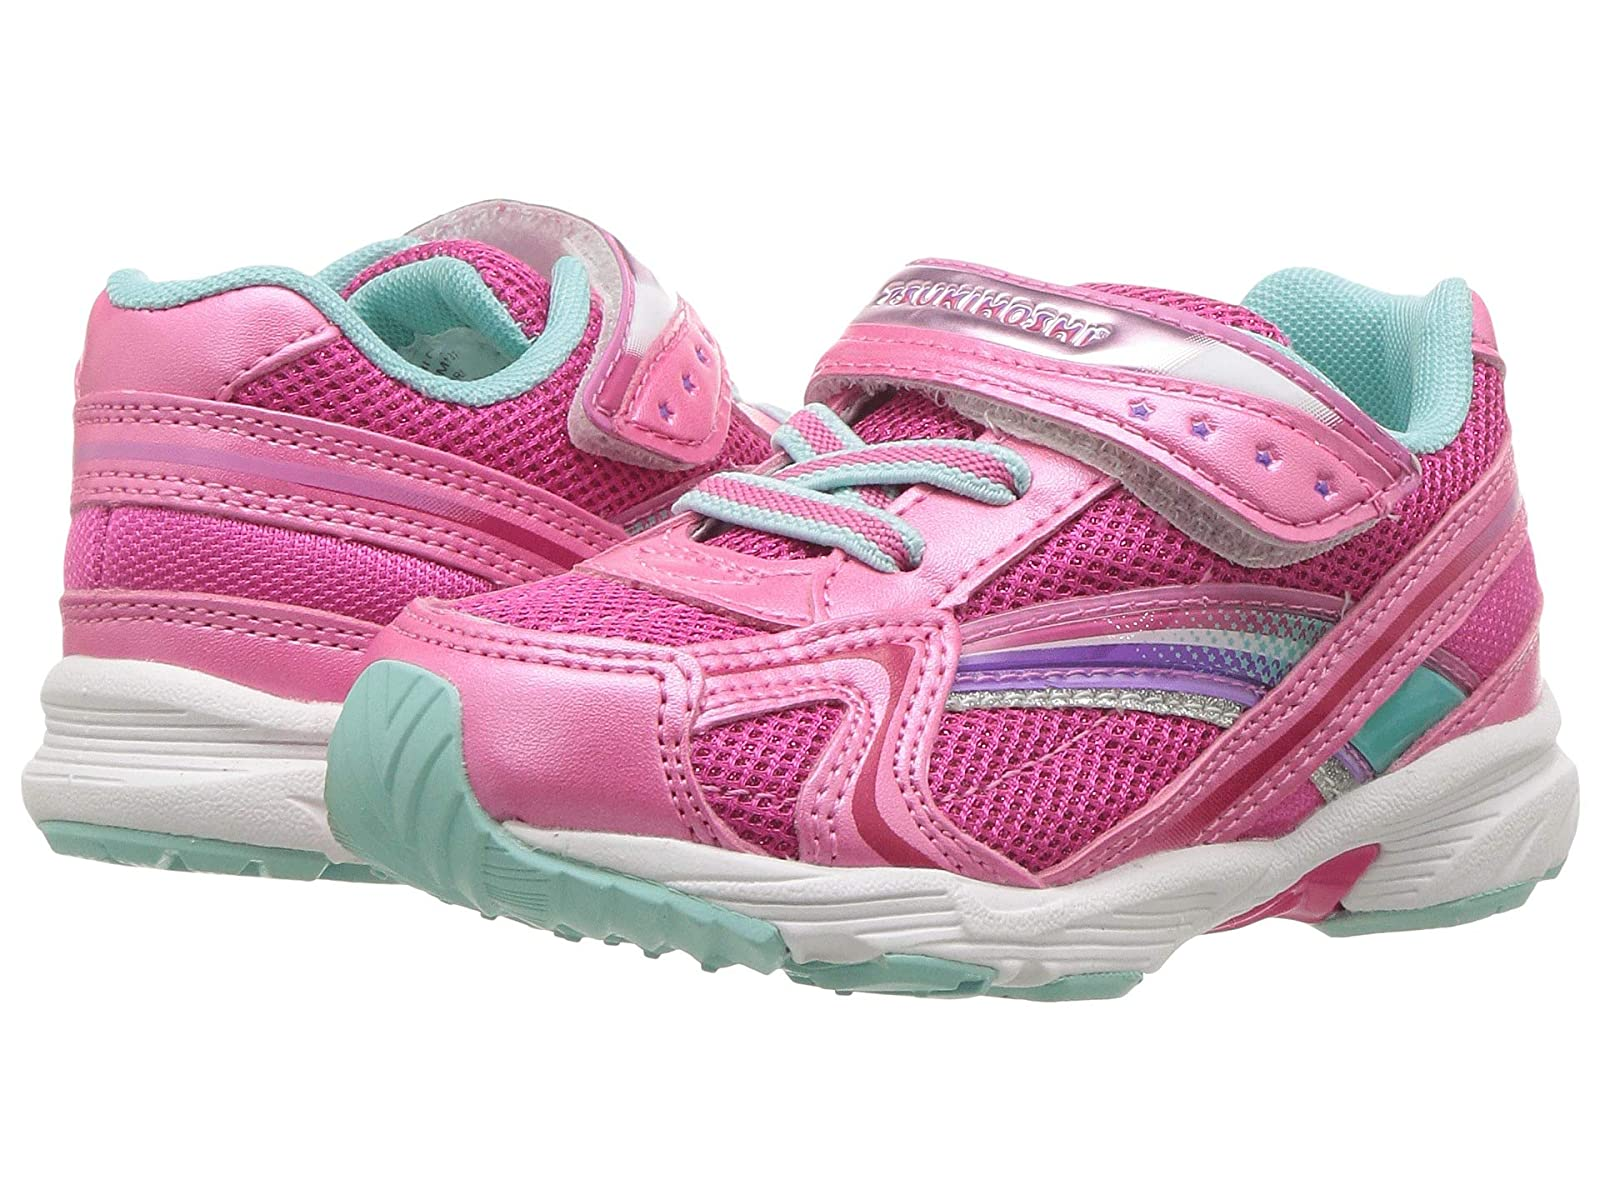 Tsukihoshi Kids Glitz (Toddler/Little Kid)Atmospheric grades have affordable shoes